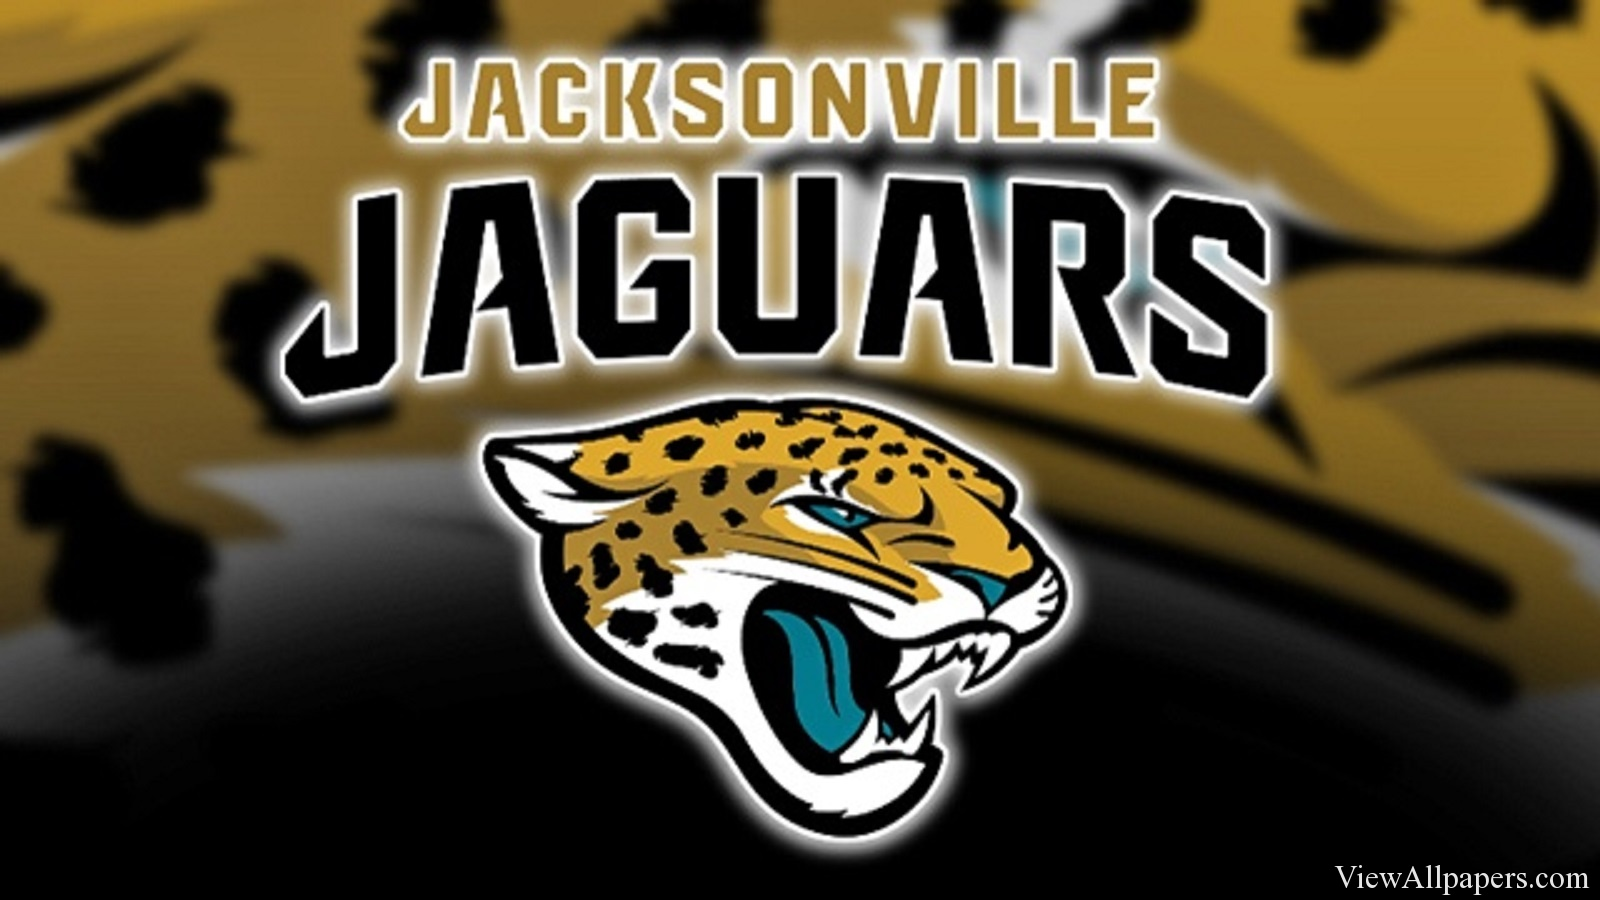 Jacksonville Jaguars Logo For PC computers desktop background 1600x900